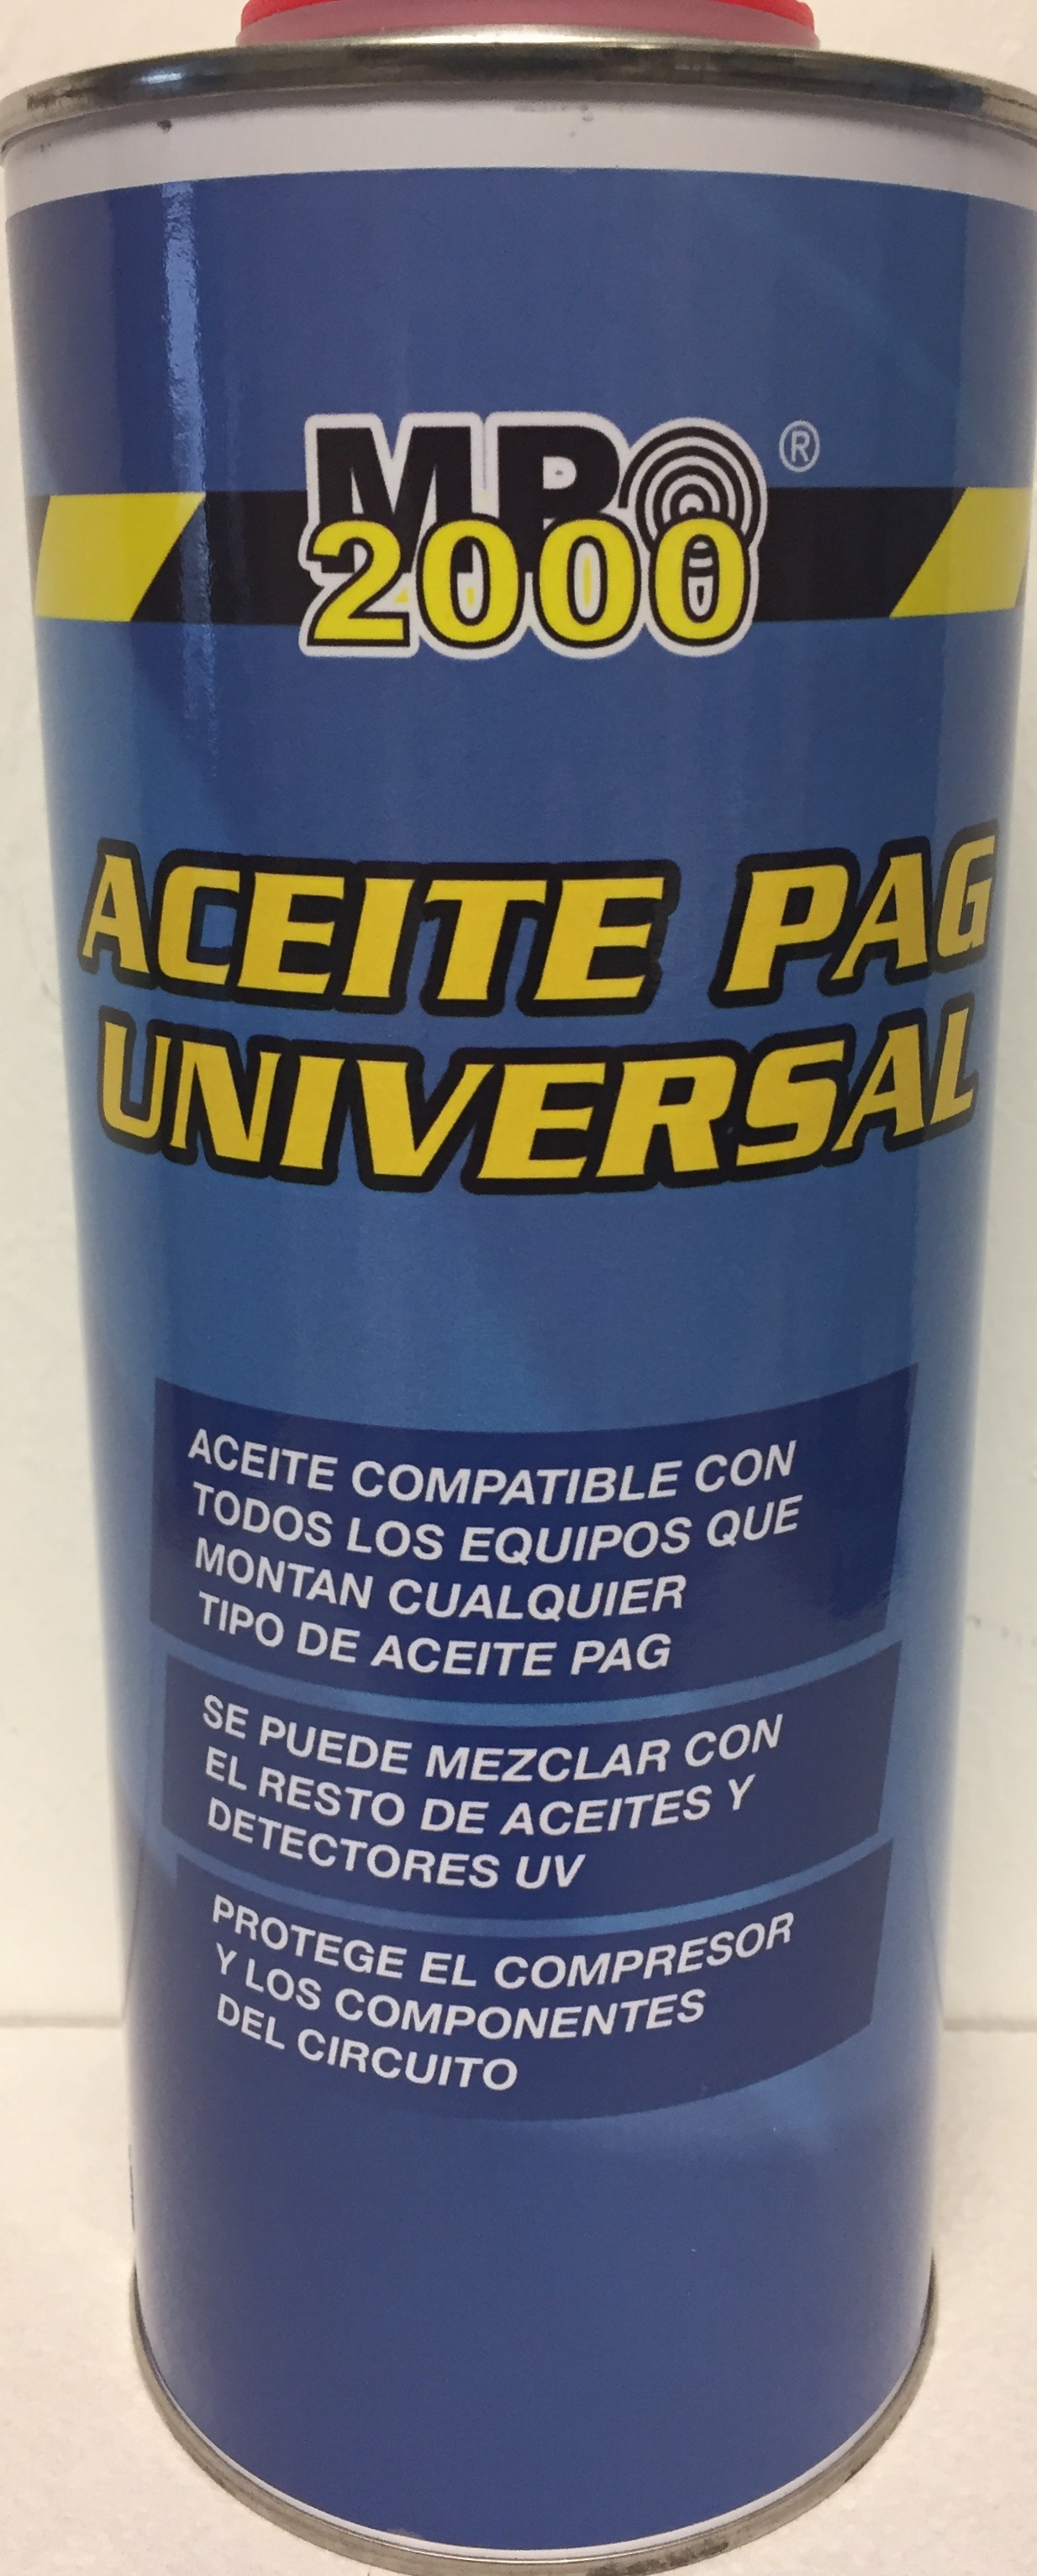 Aceite PAG Universal